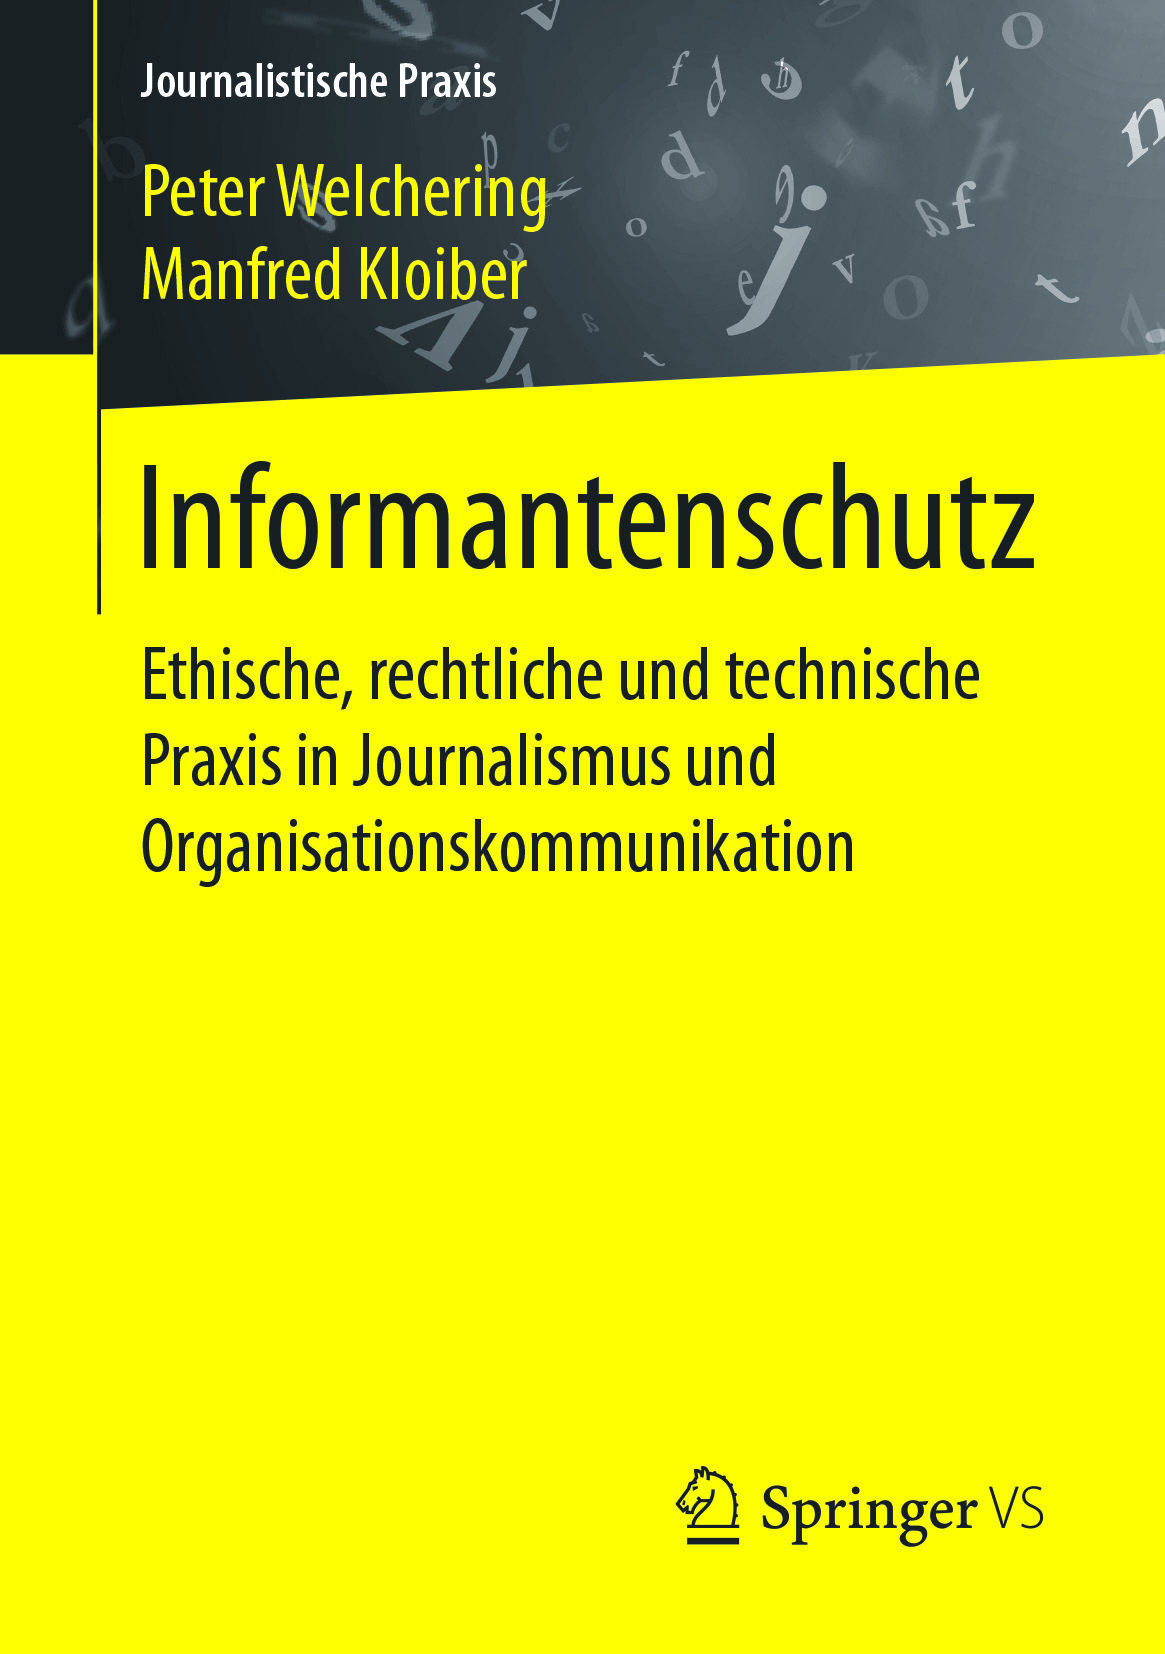 Kloiber, Manfred - Informantenschutz, ebook